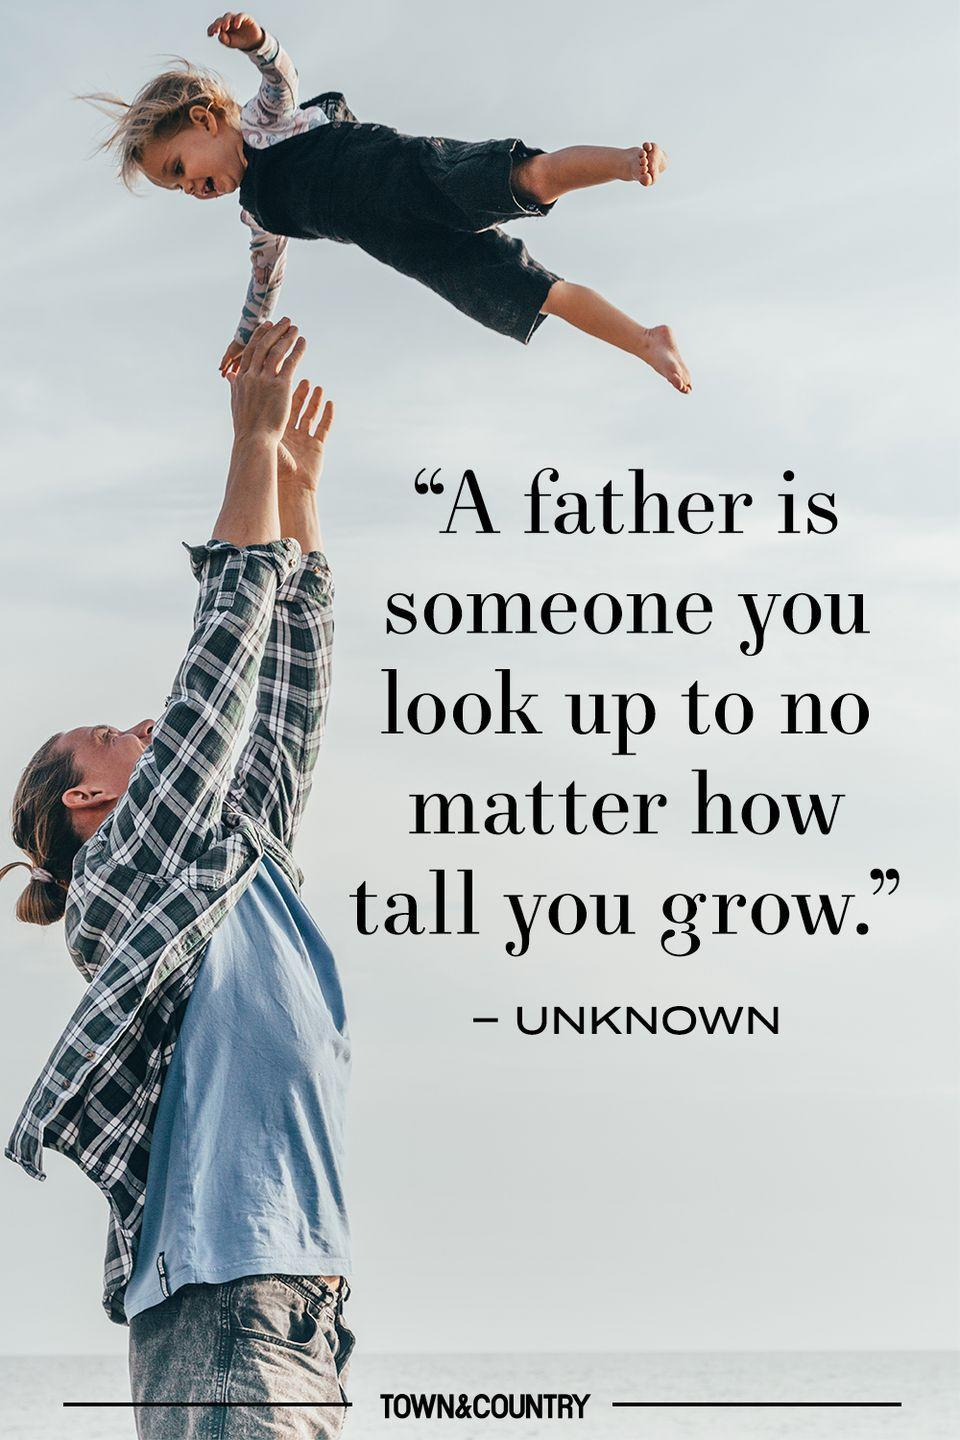 "<p>""A father is someone you look up to no matter how tall you grow."" </p><p>– Unknown</p>"